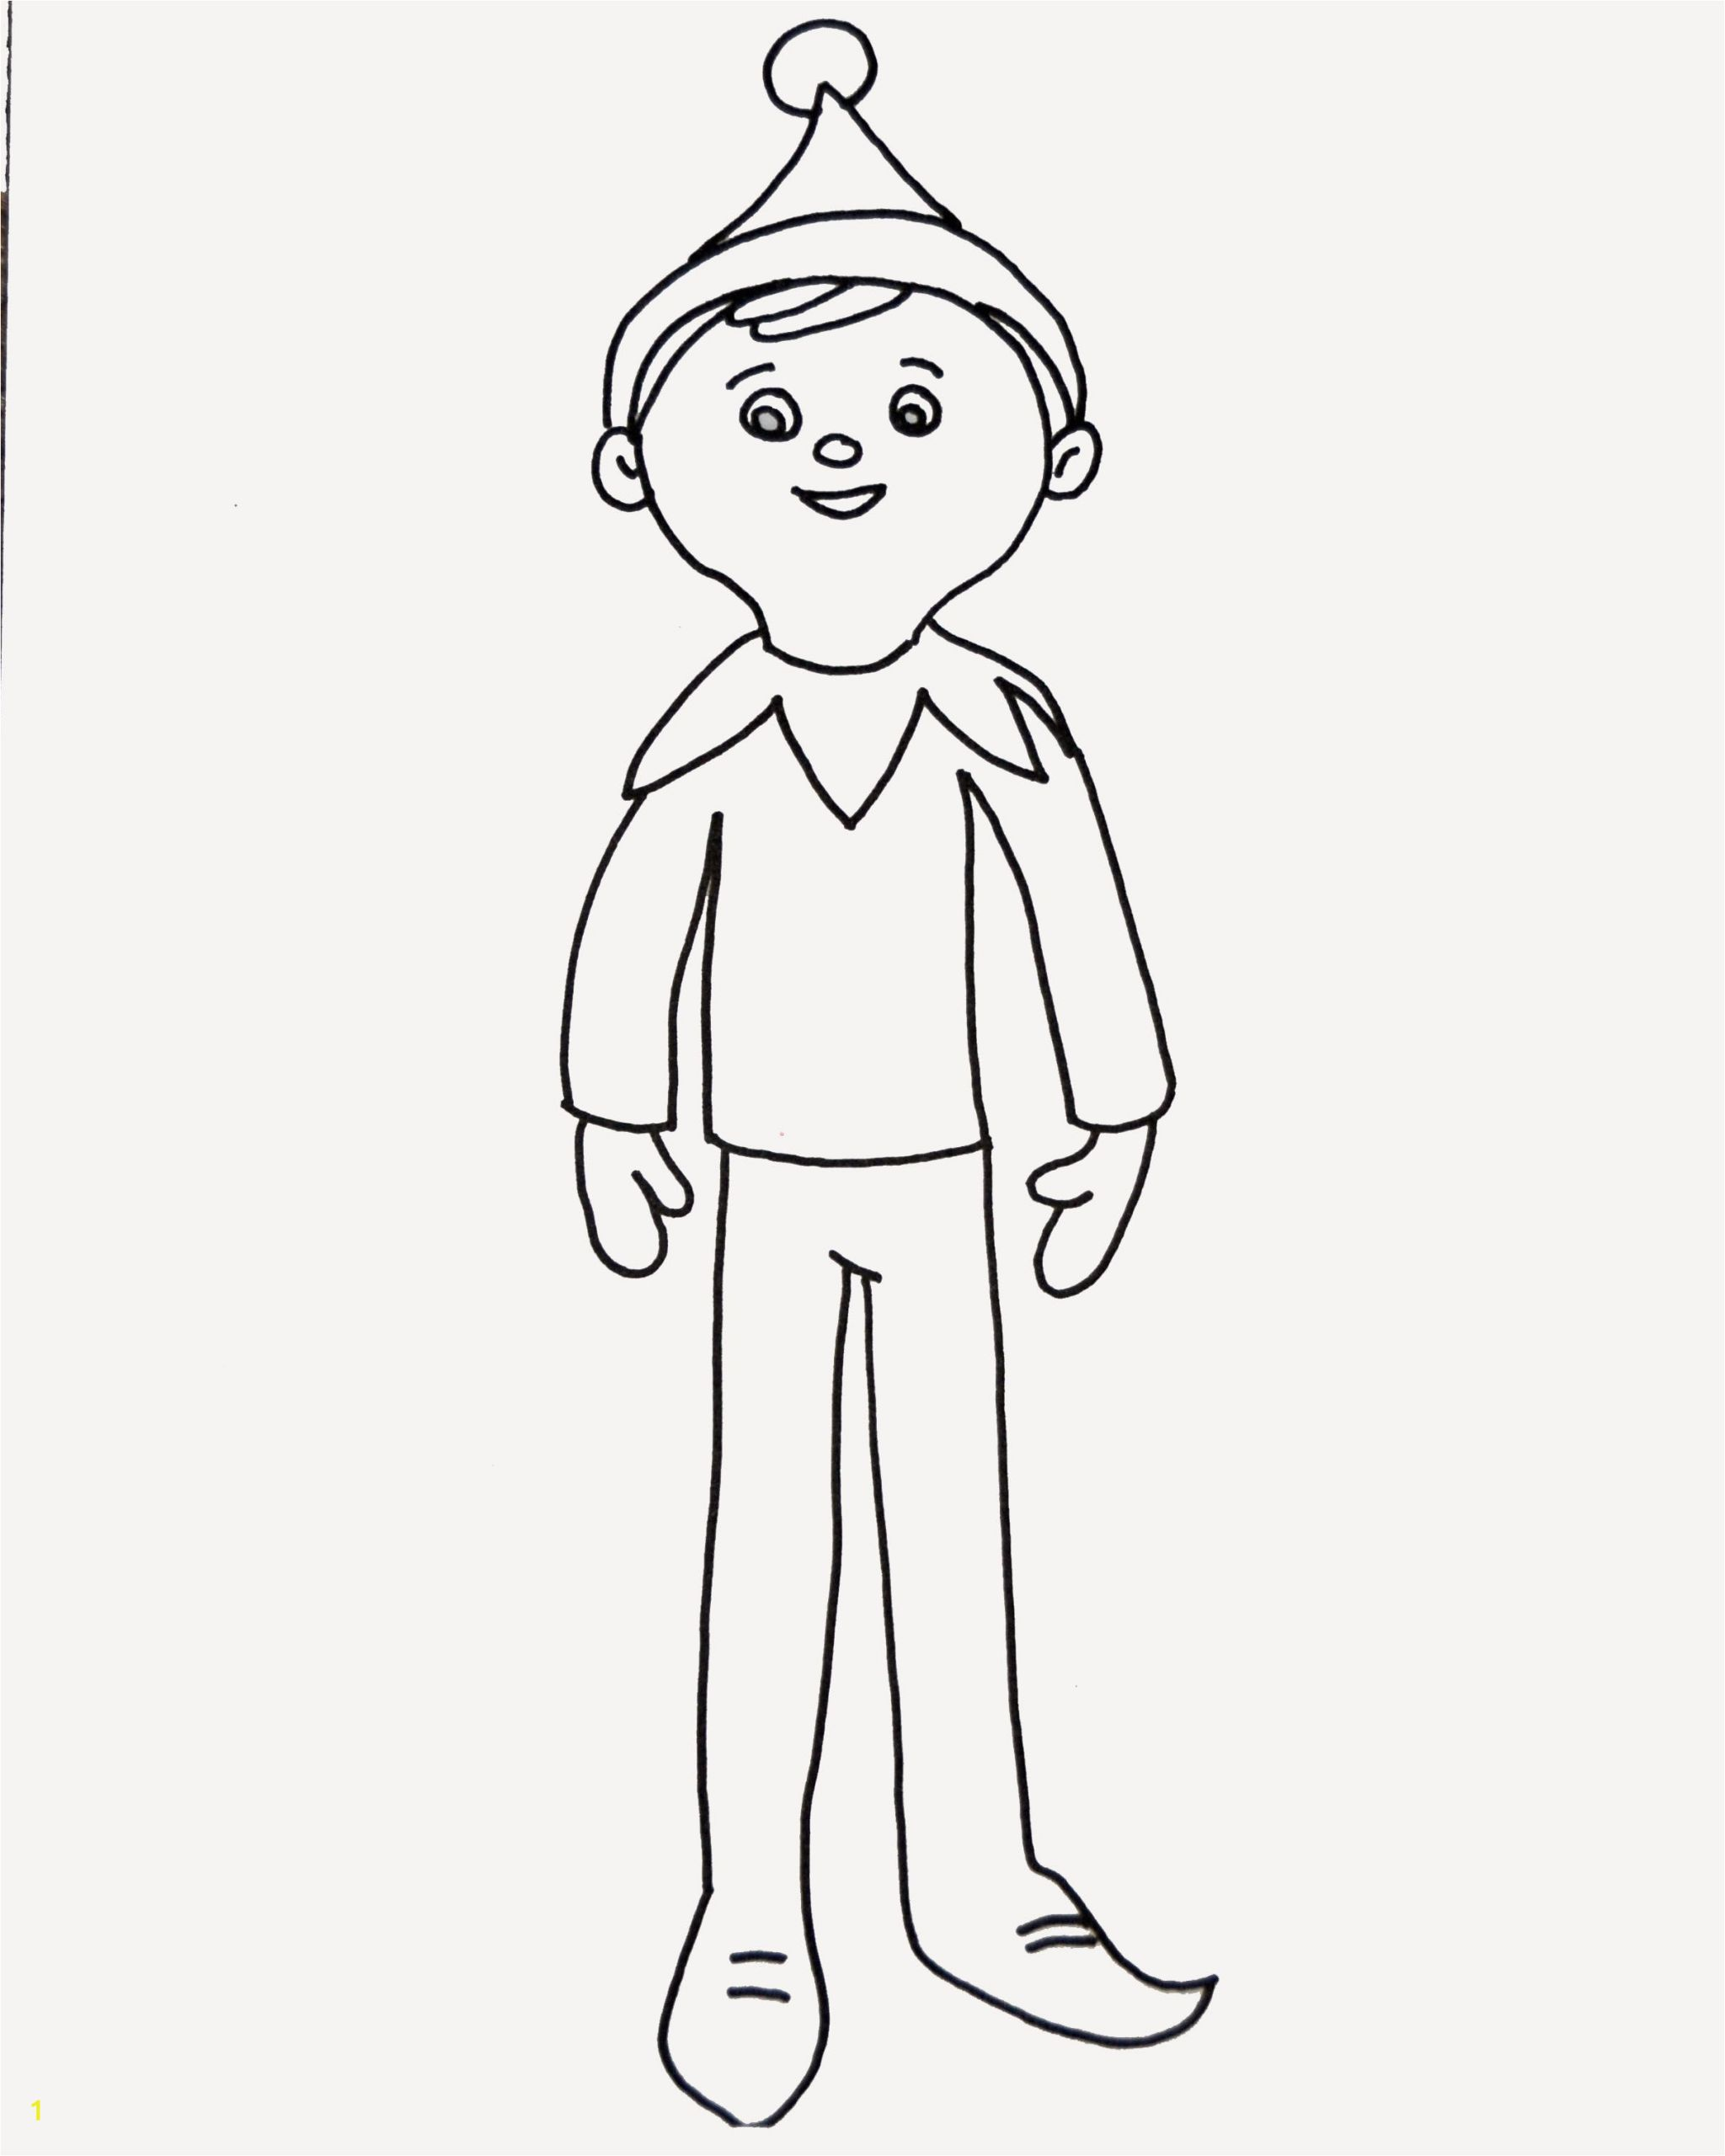 Free Printable Elf On the Shelf Coloring Pages Elf On the Shelf Coloring Page Elf On Shelf